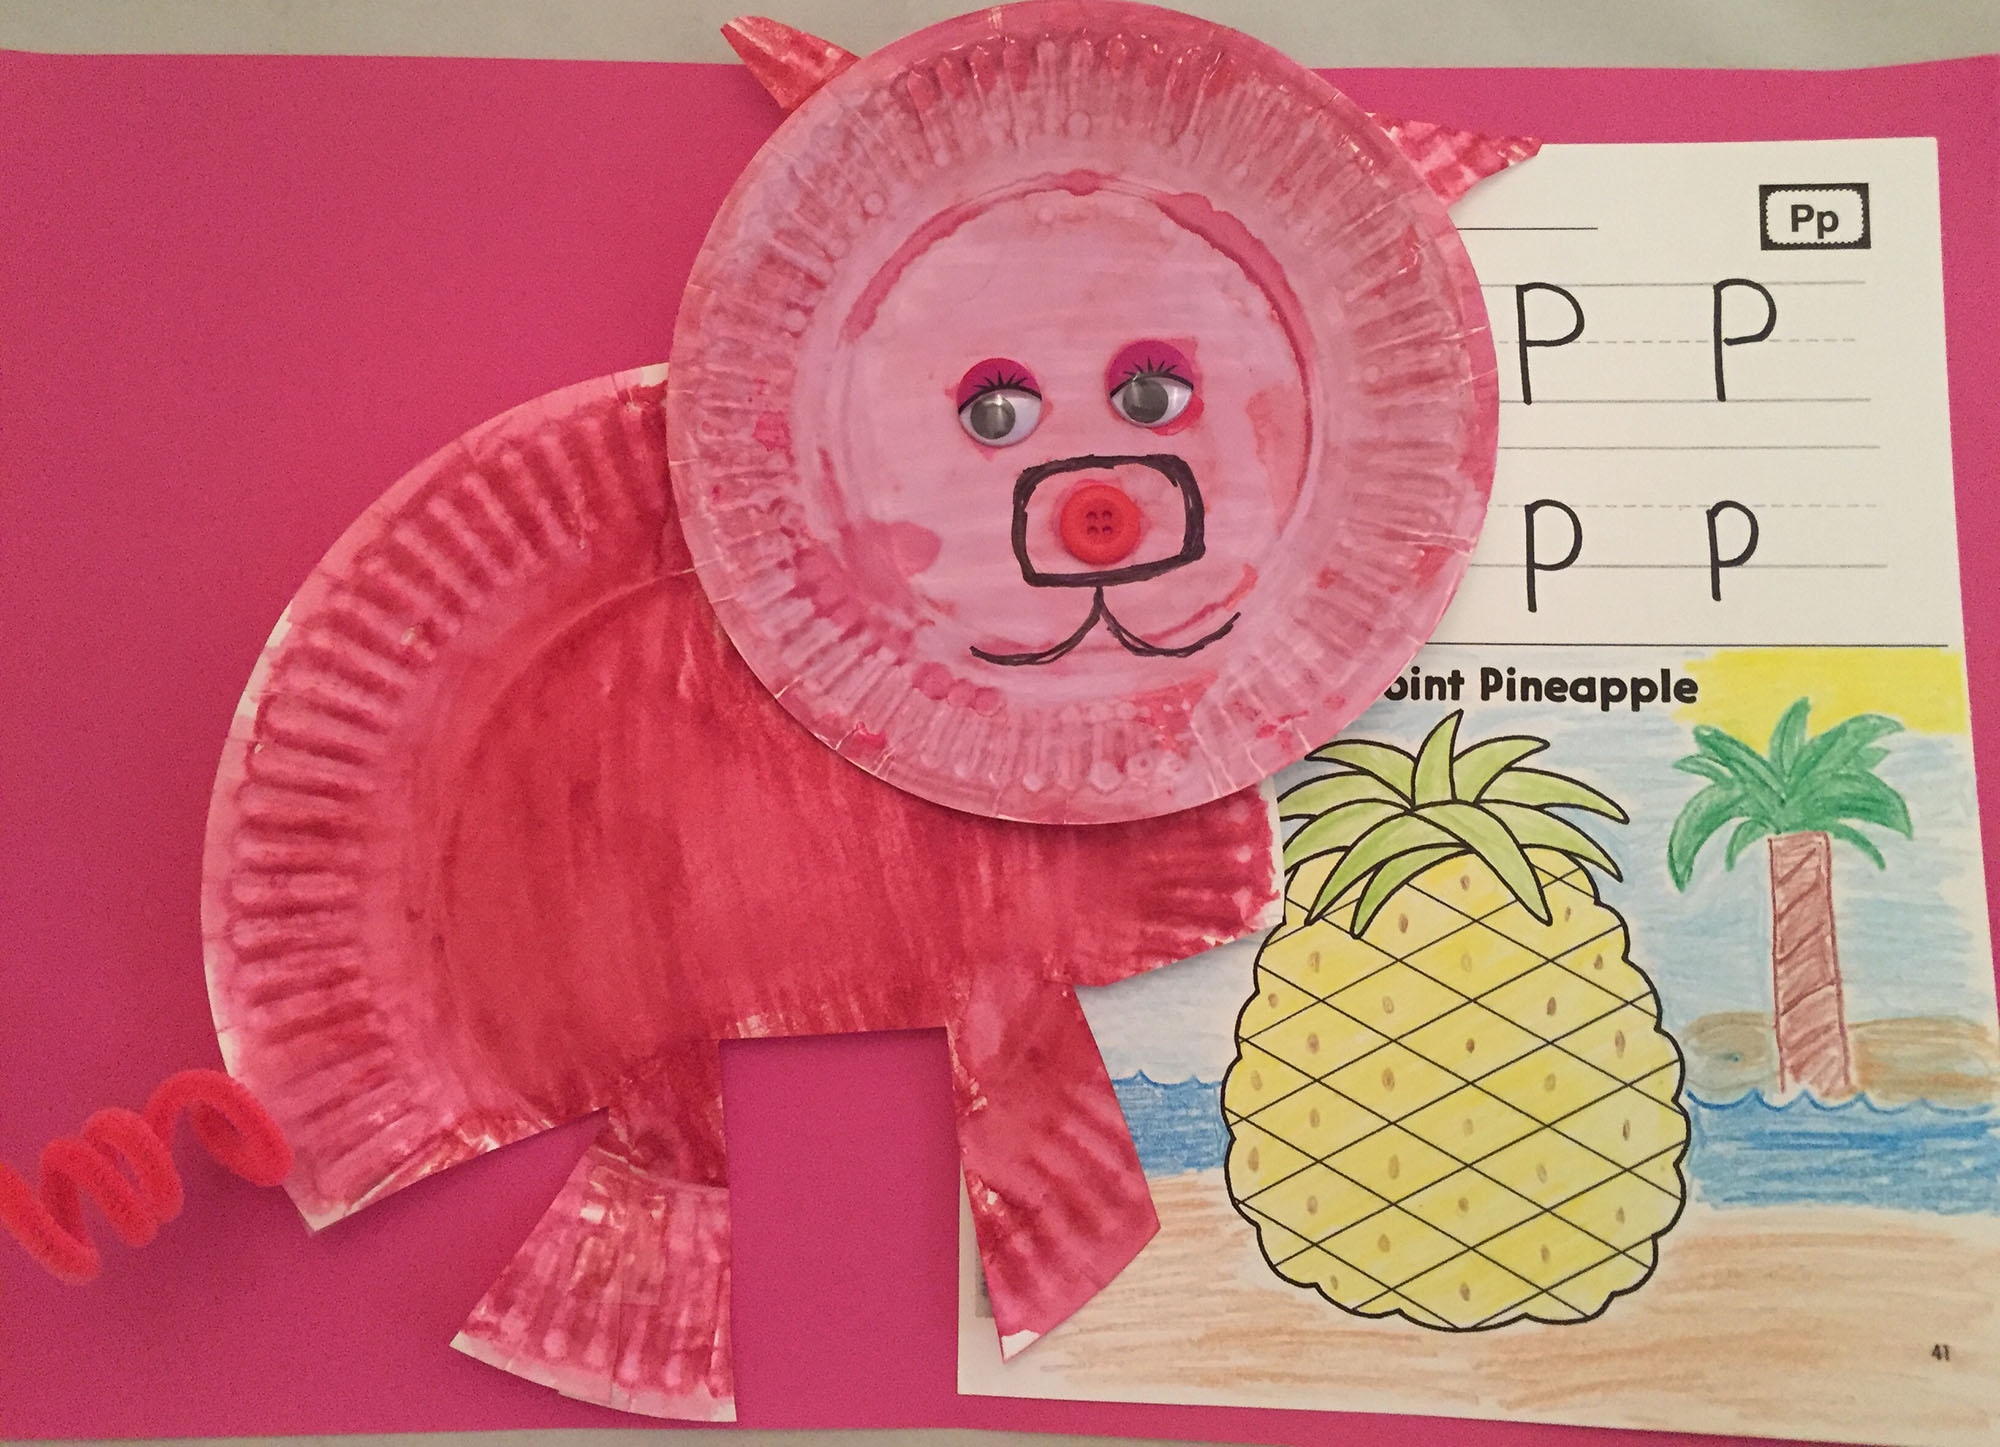 Paper-Plate Pig and Pencil-Point Pineapple